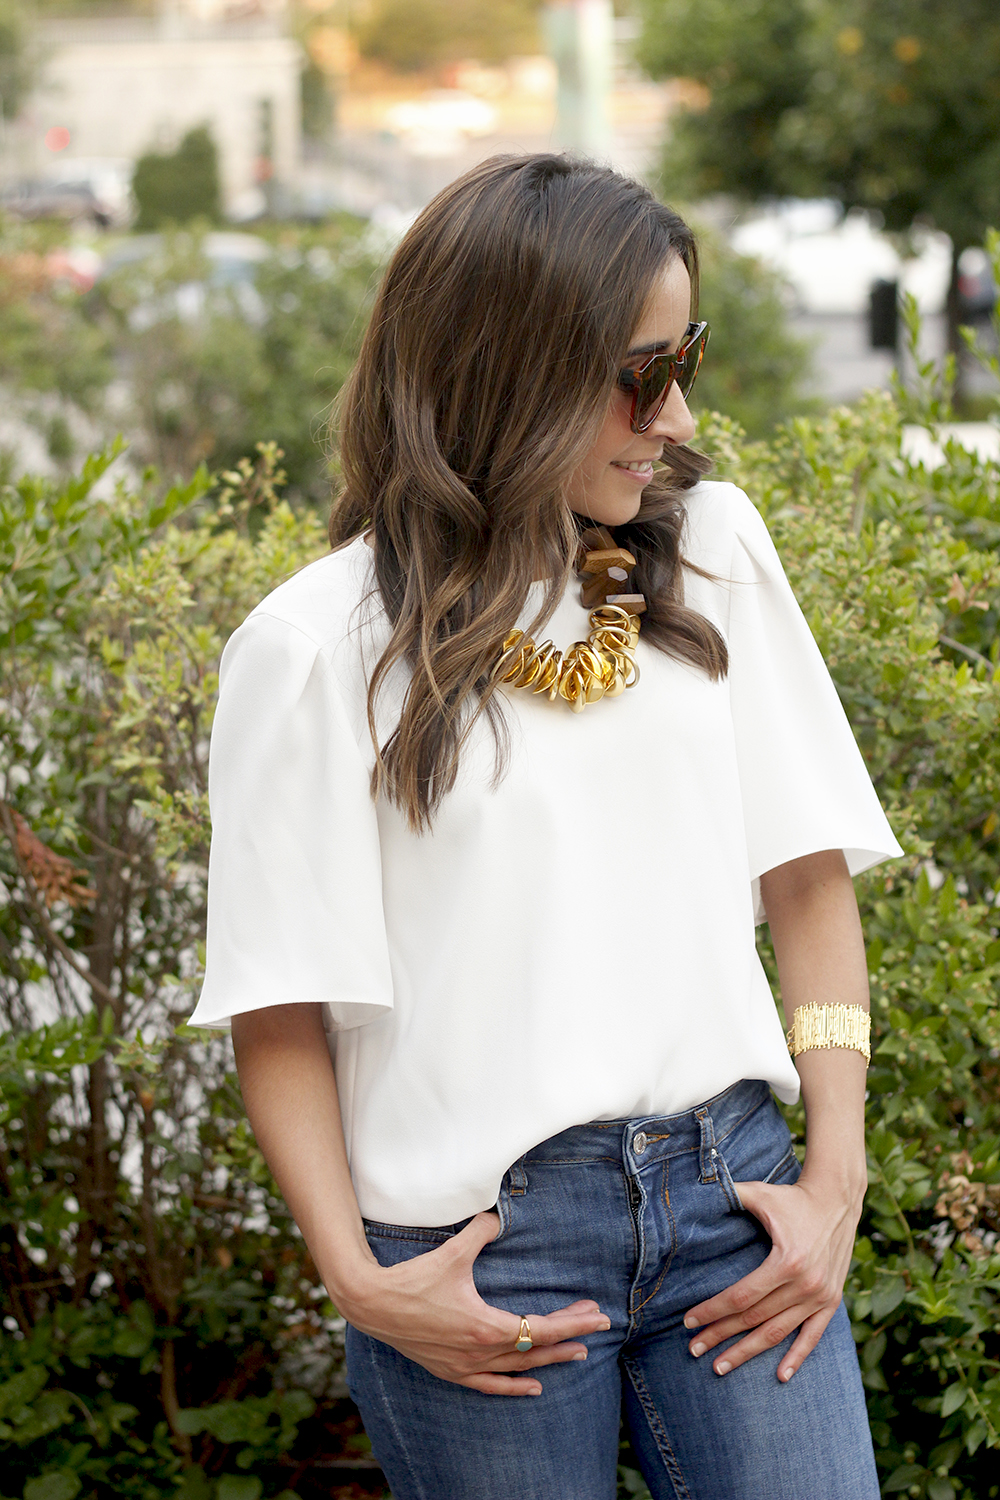 White blouse jeans golden and wood necklace jewellery corte ingles joyería verano summer outfit style3